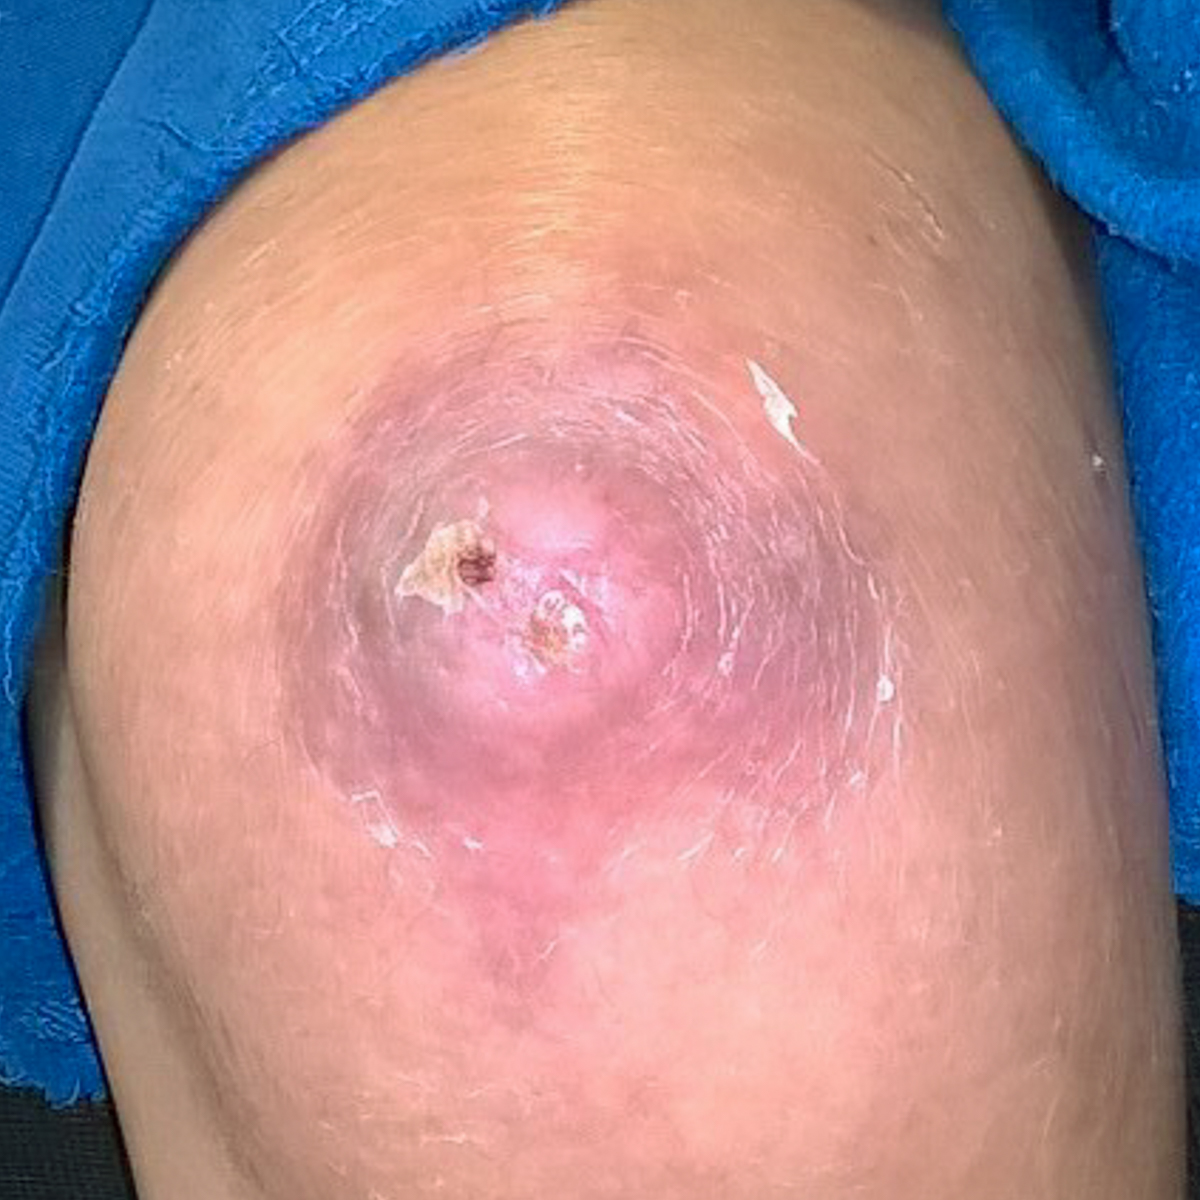 Healed wound on knww